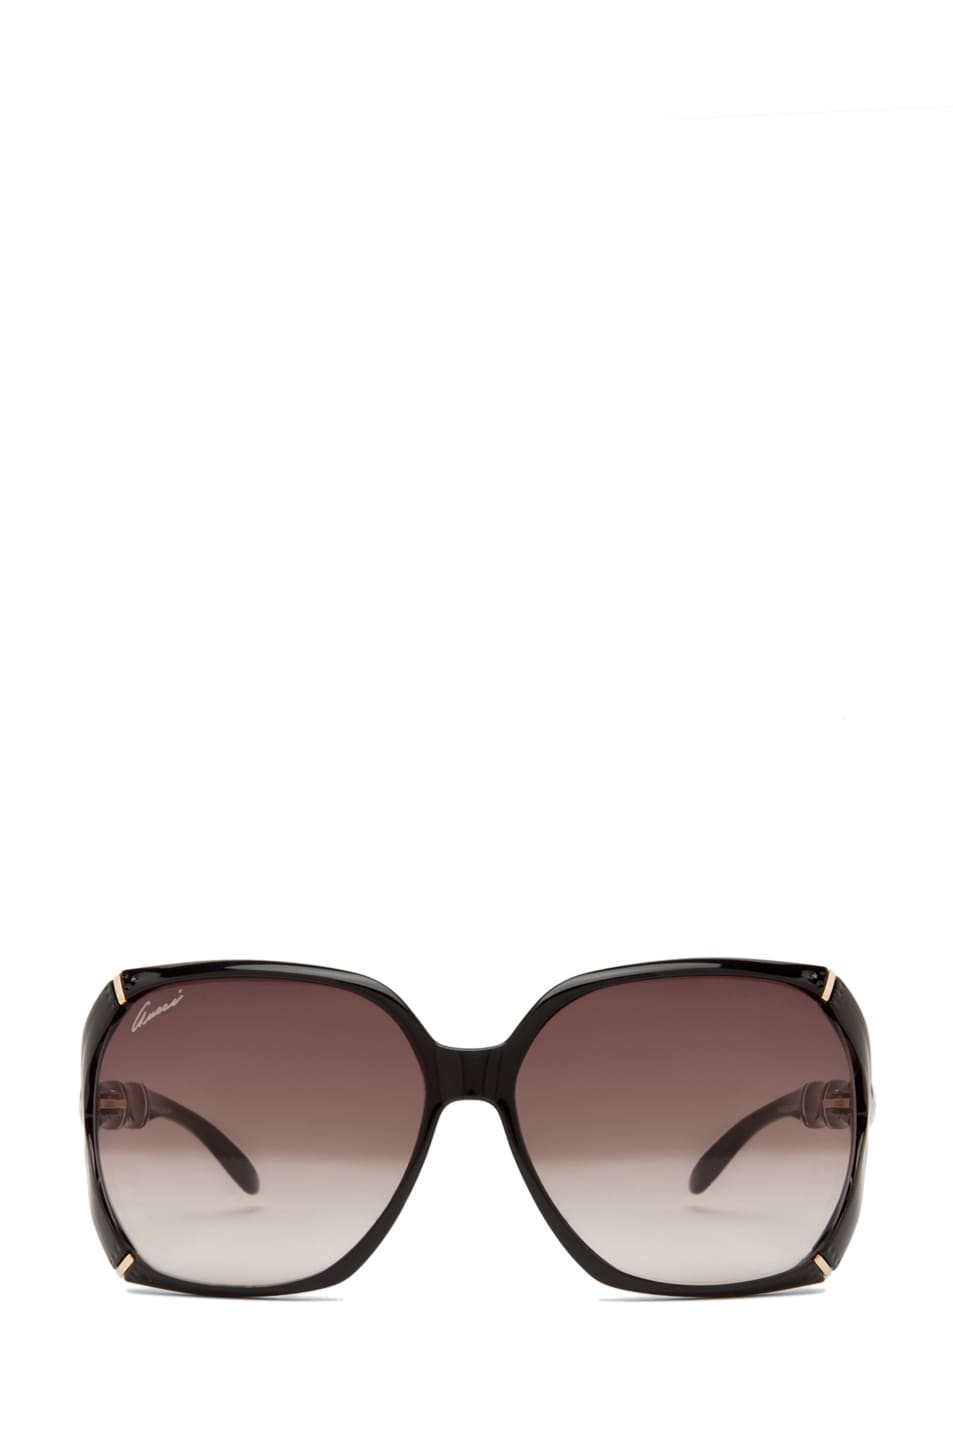 Image 1 of Gucci 3508 Sunglasses in Shiny Black